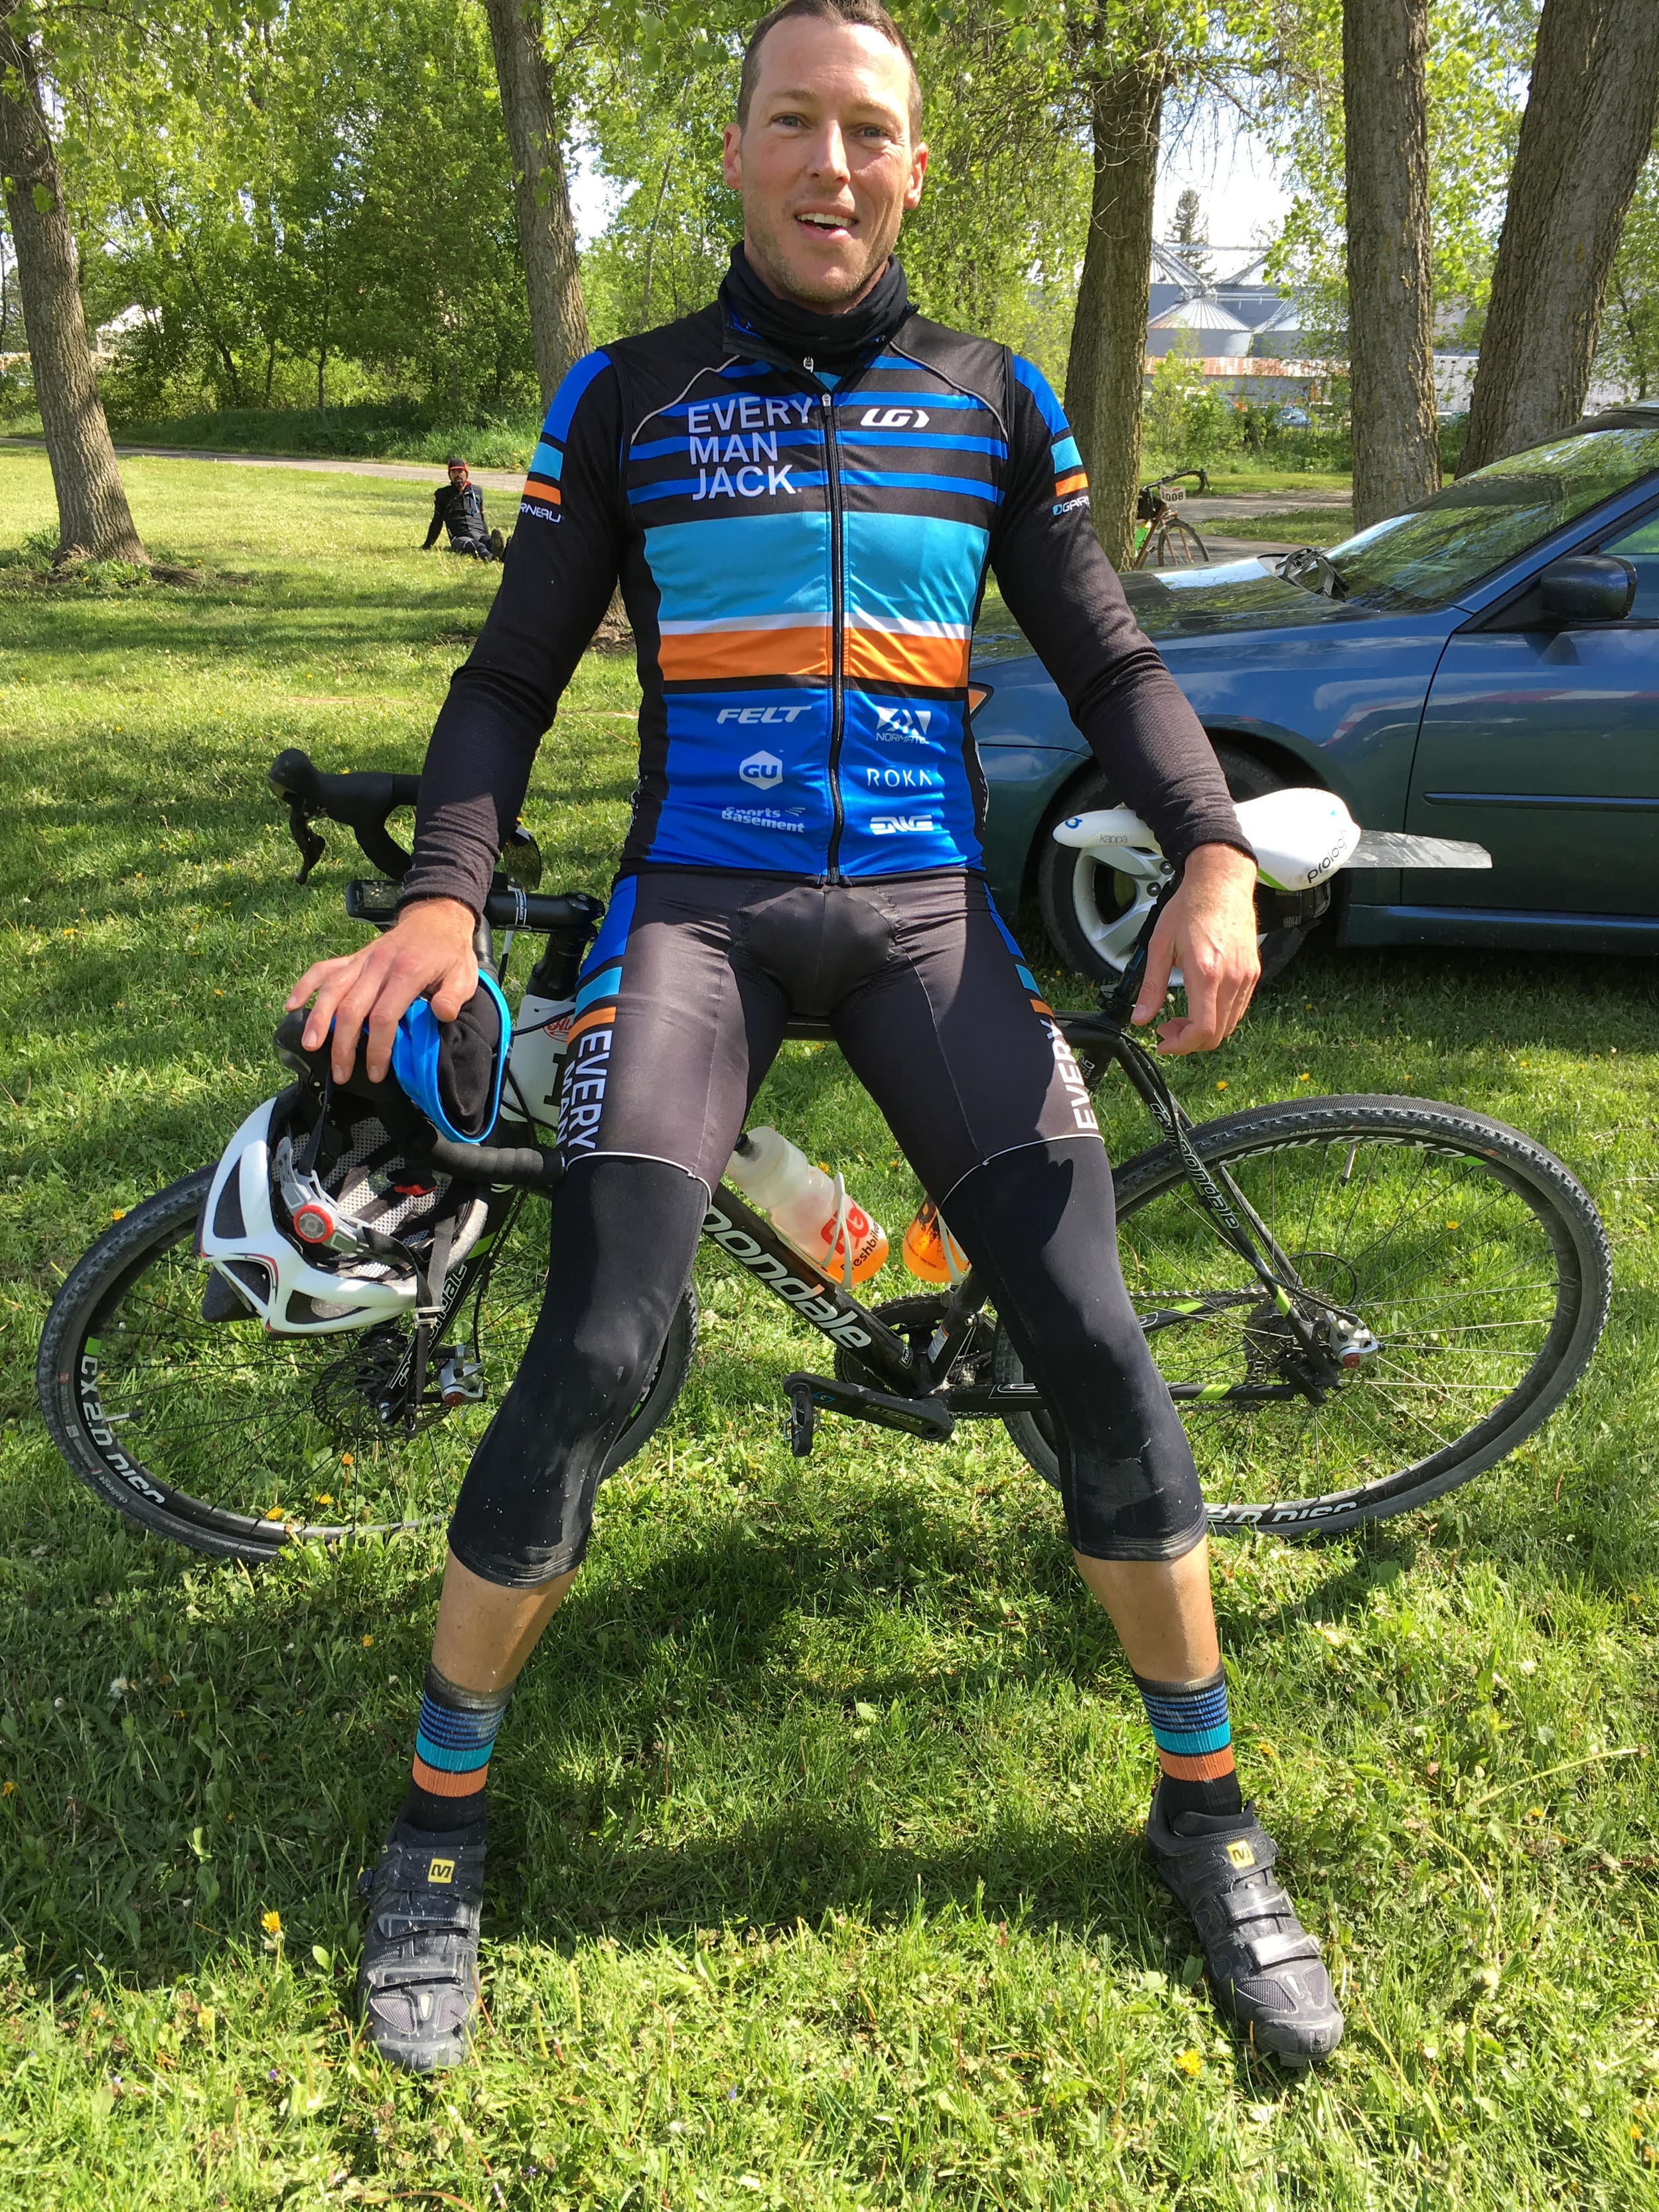 James after finishing the Almanzo 100, a 100mi all gravel road race in southeastern Minnesota